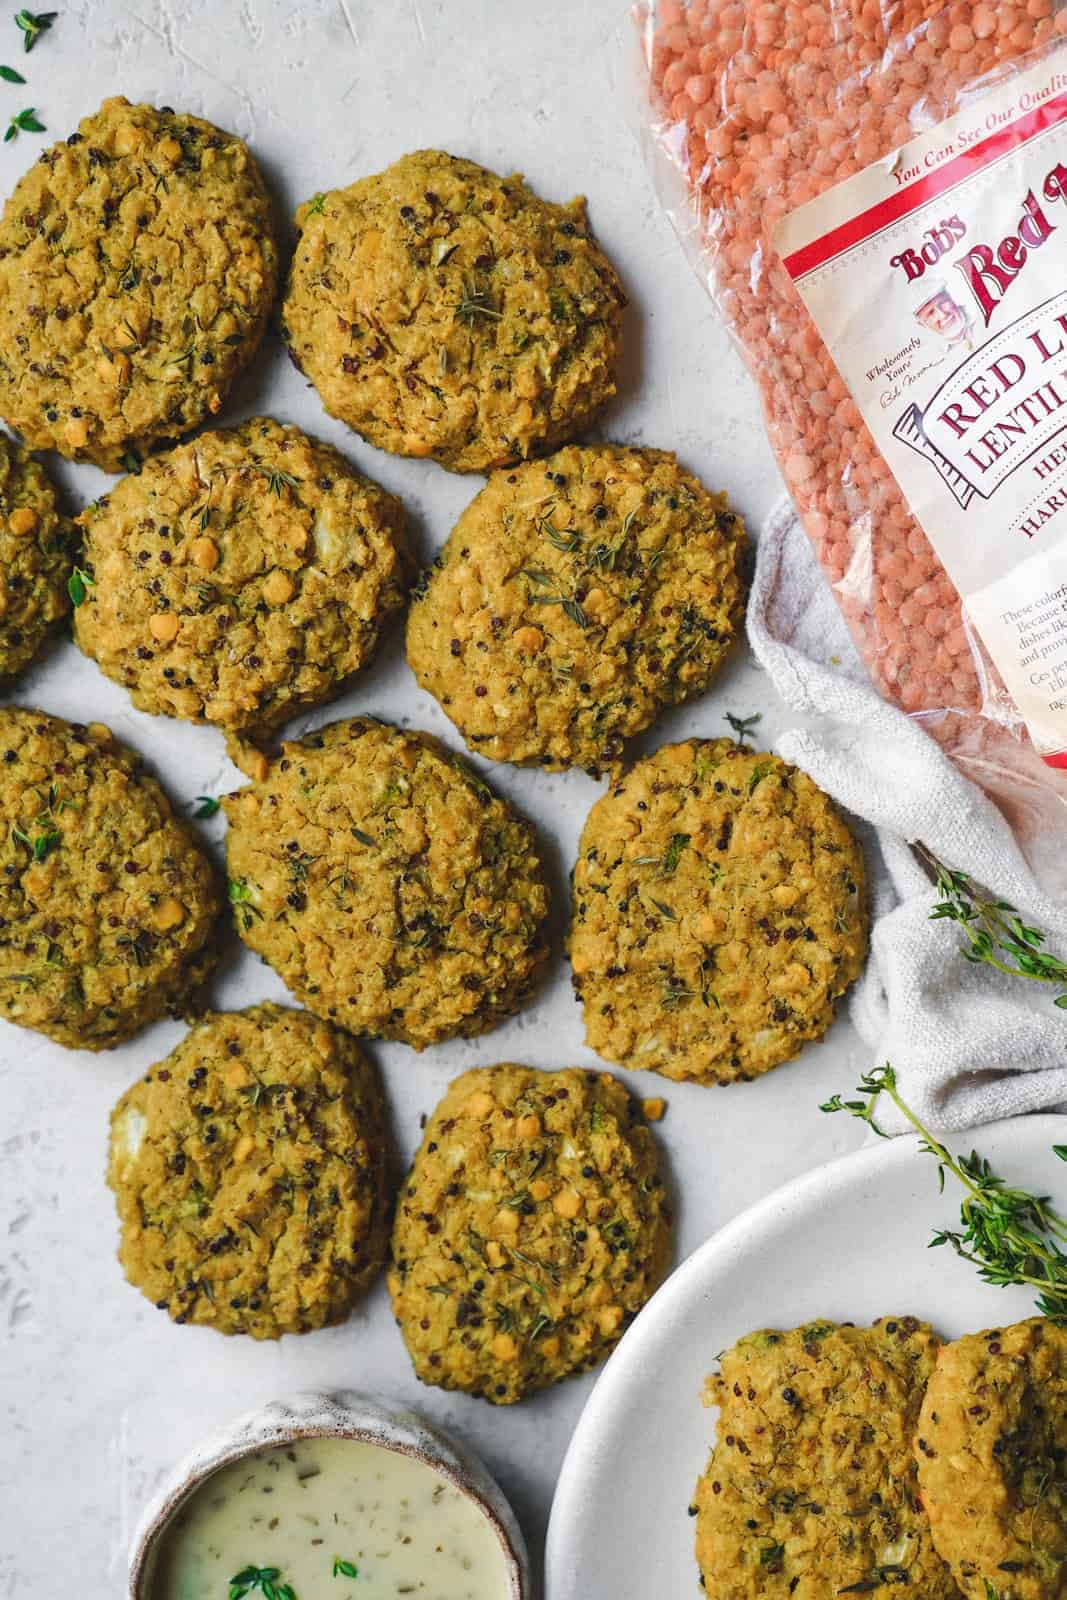 Yummy plant based vegetable fritters made with my fav Bob's Red Mill vegan products. Perfect for the BBQ!